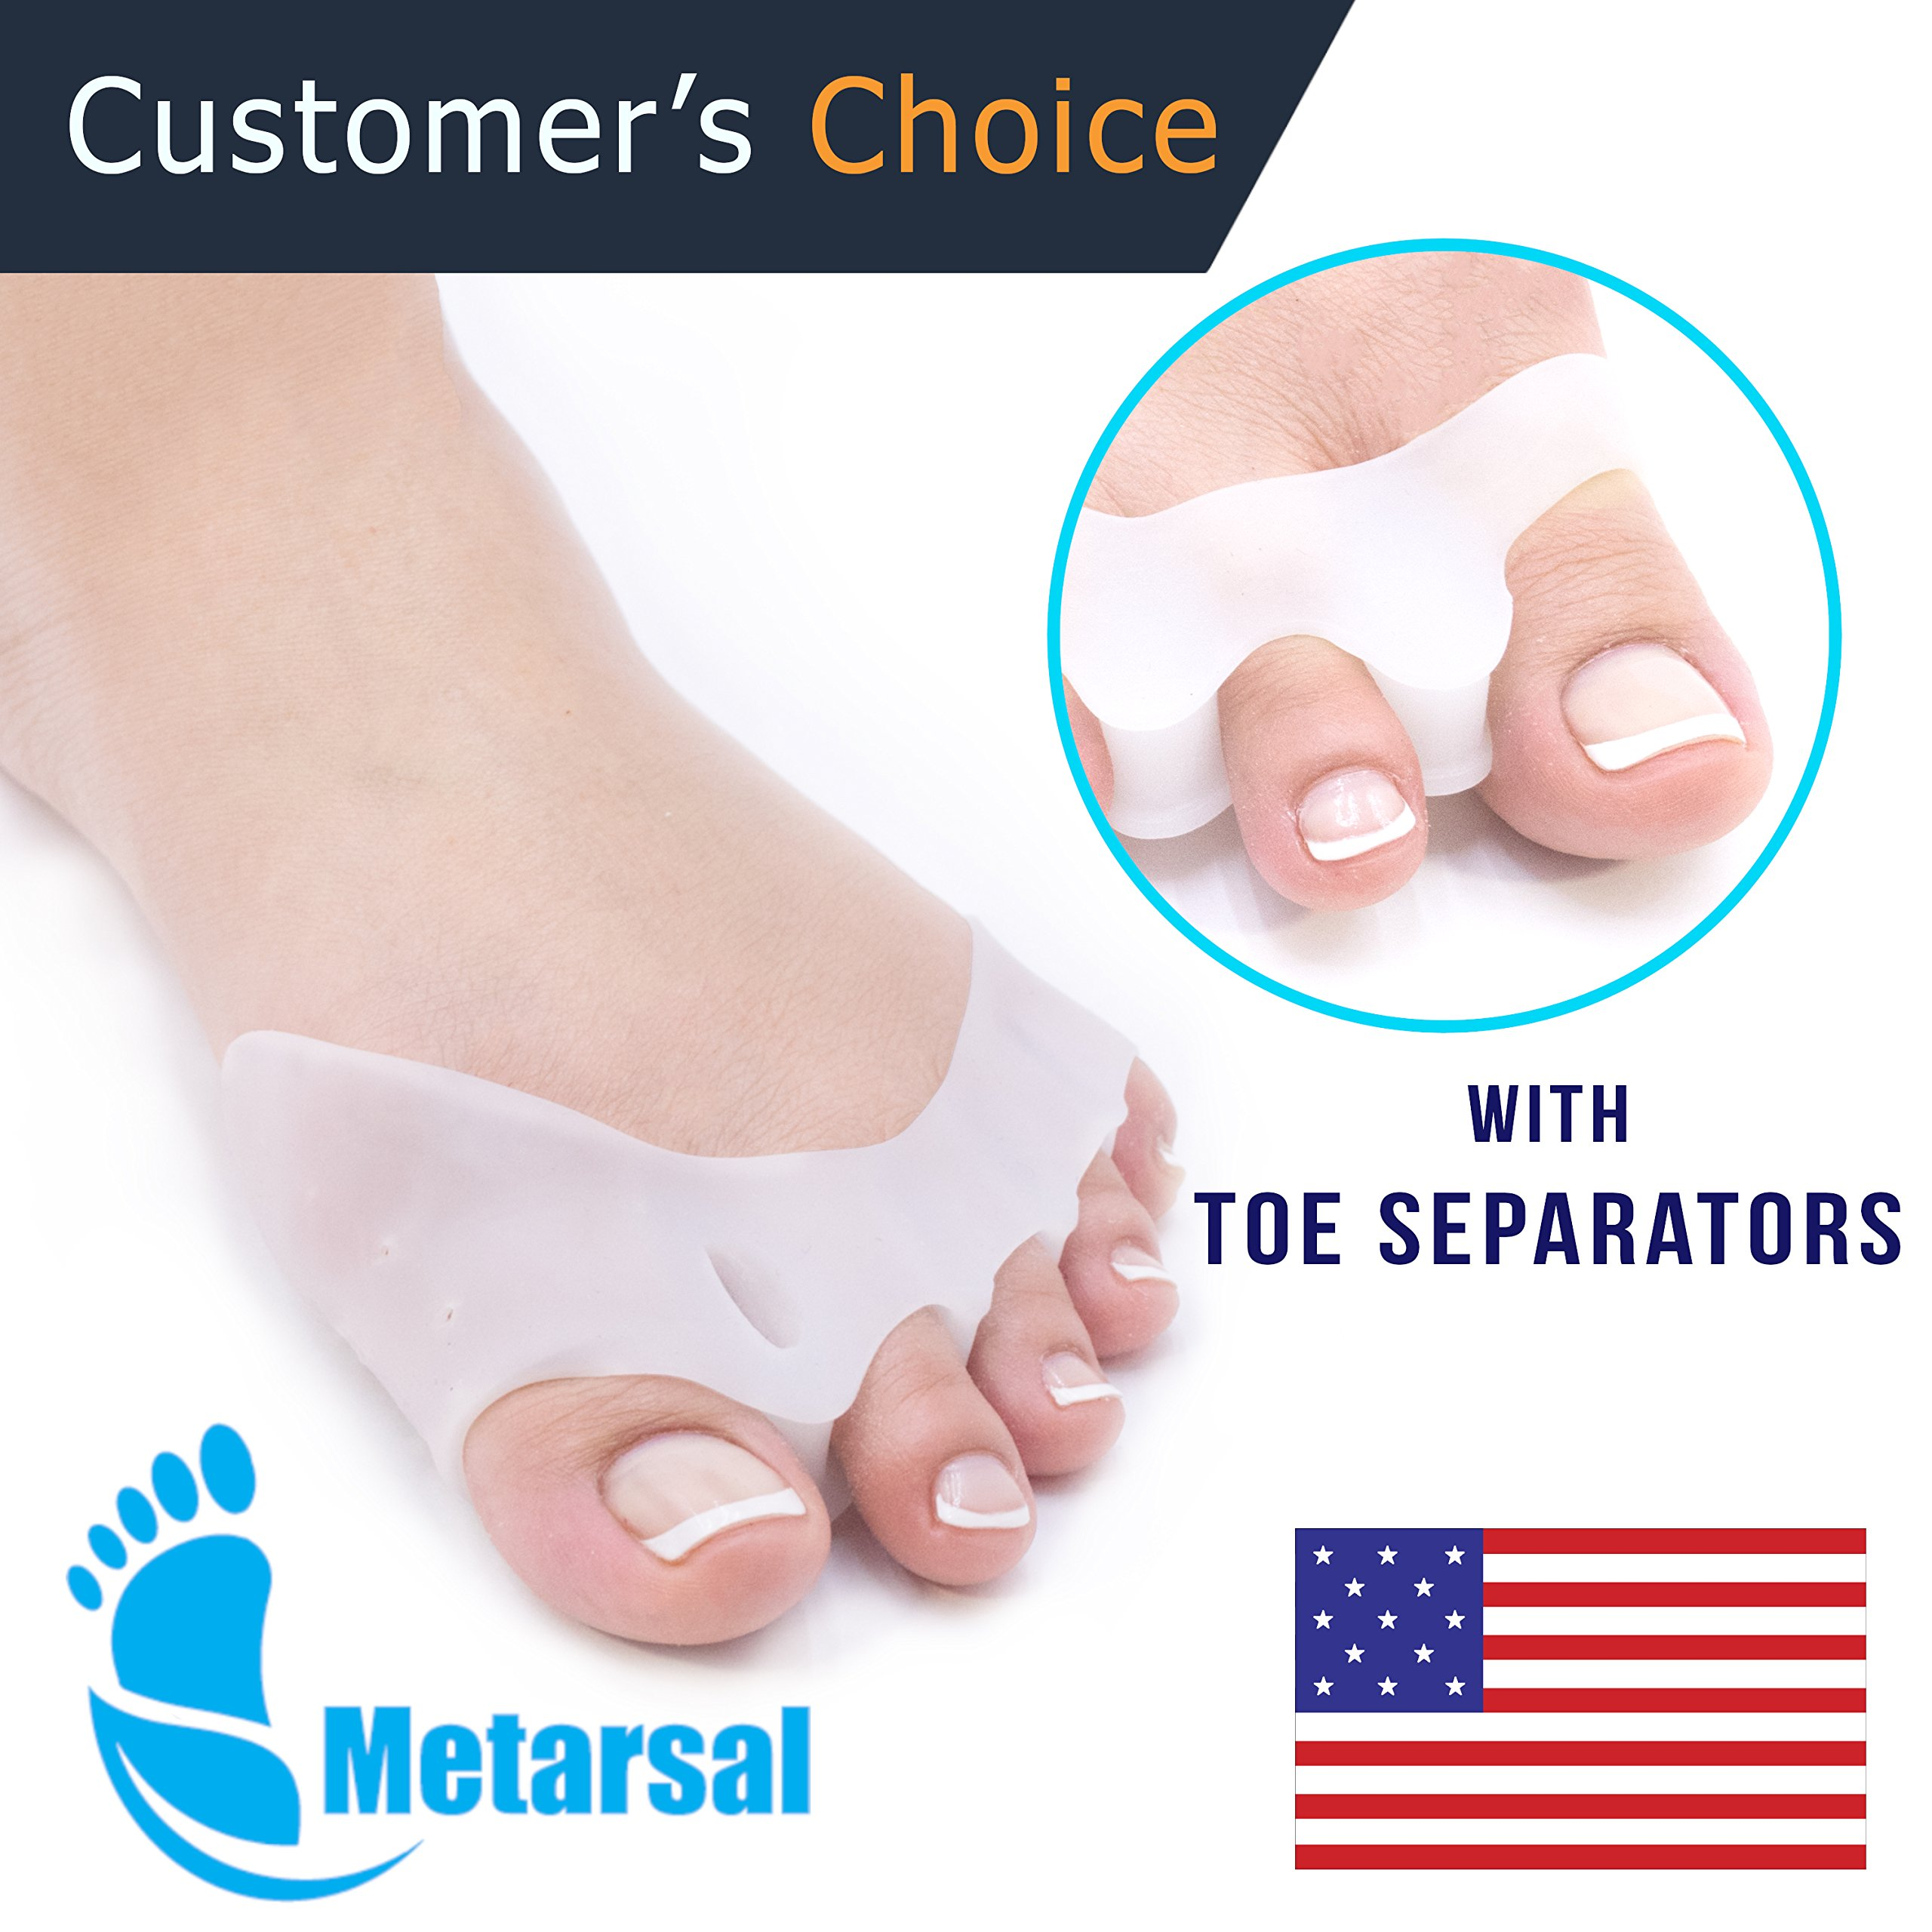 Gel Metatarsal Cushion Toe Separators,Bunion Pad,Bunion Support, Forefoot Pad, Ball of Foot, Forefoot Support, Barefoot, Forefoot Pain, Forefoot Cushions, Prevent Calluses and Blisters by Metarsal